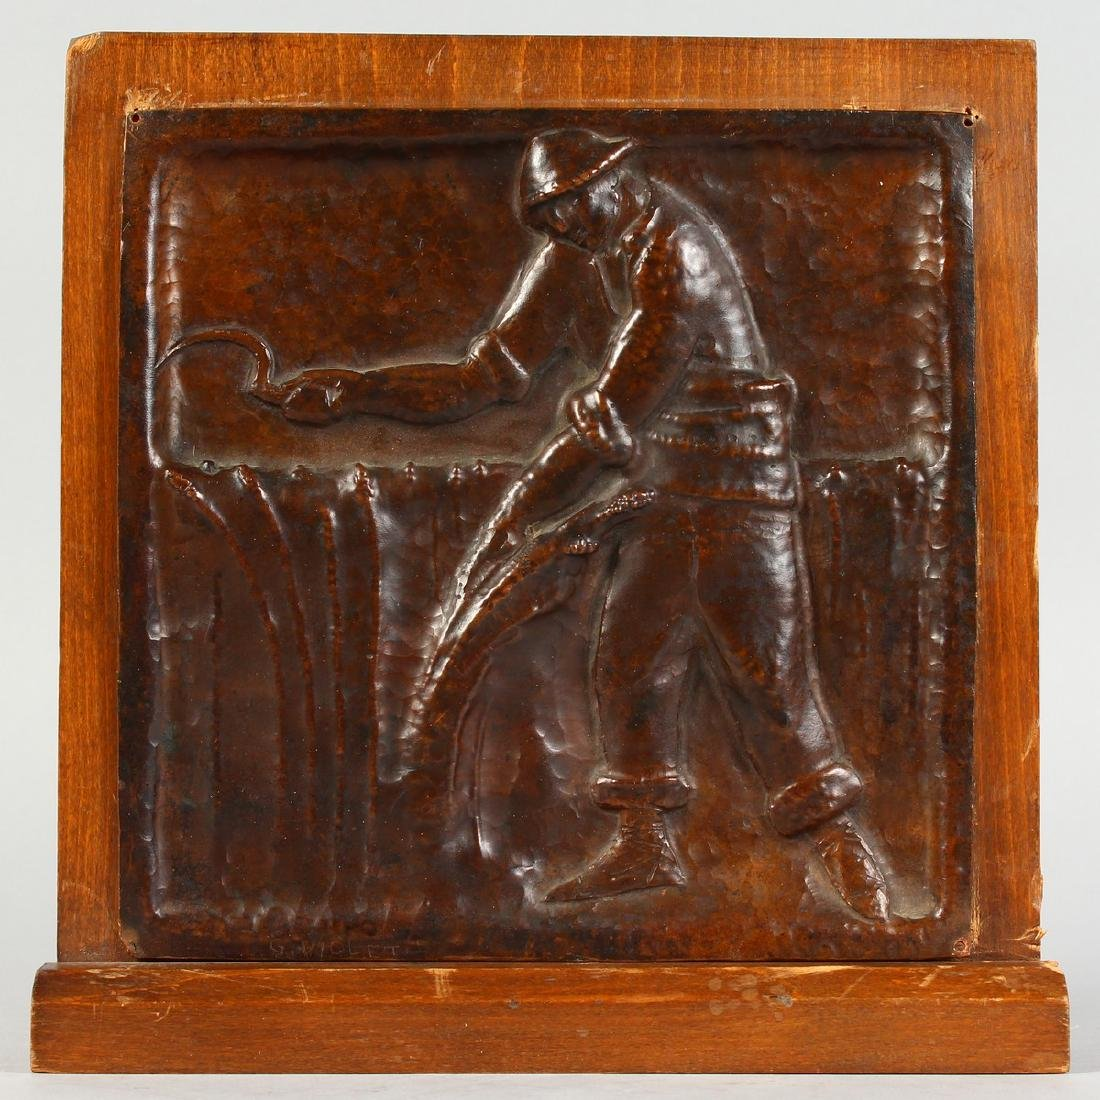 AN ARTS & CRAFTS COPPER PLAQUE, embossed with a man